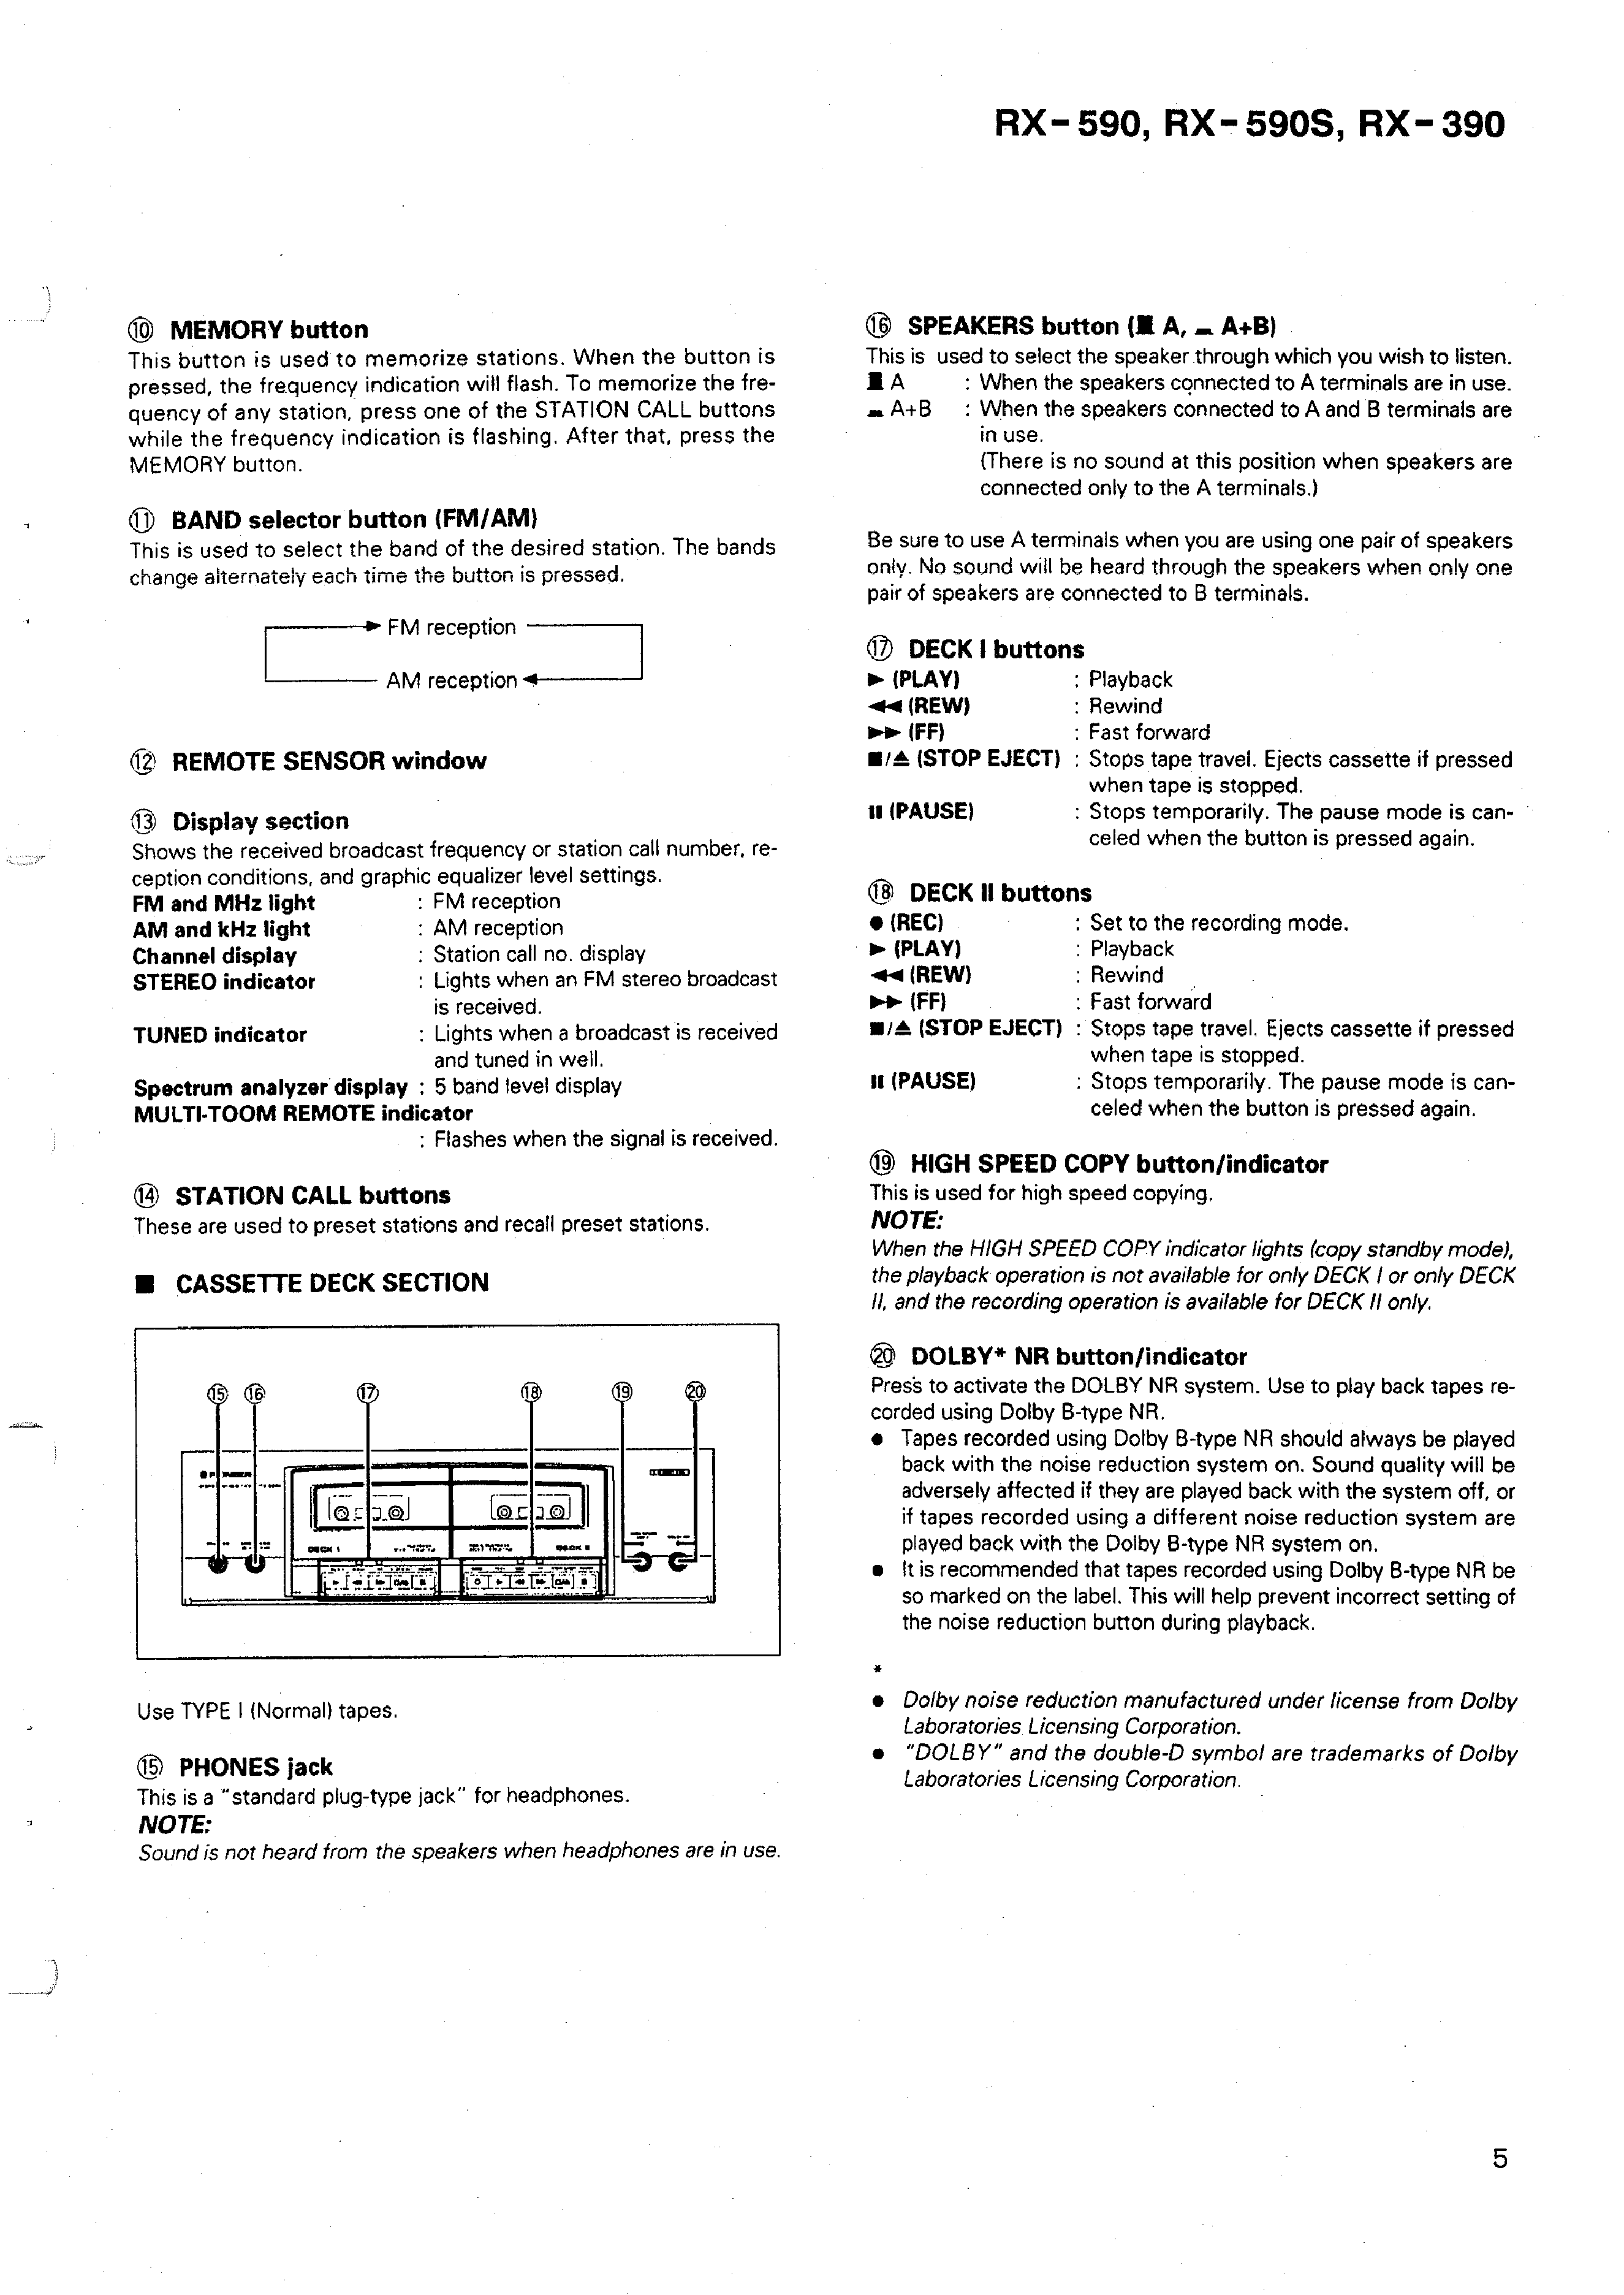 Service Manual For Pioneer Rx-590